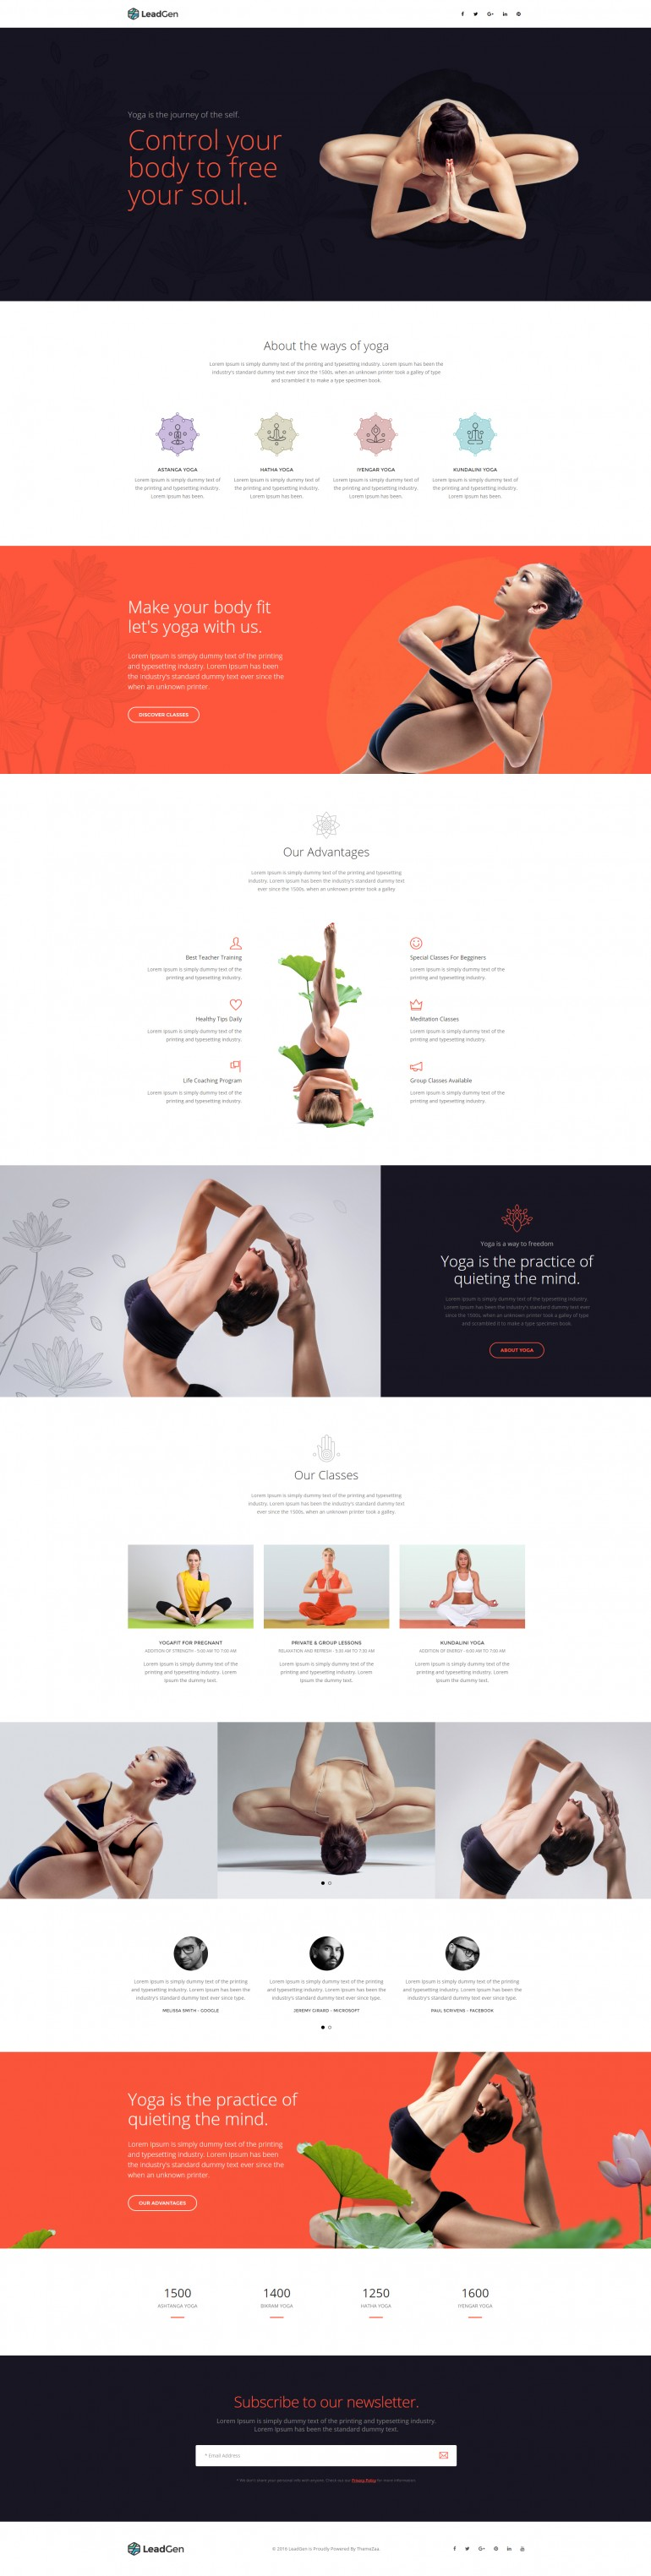 LeadGen – Multipurpose Marketing Landing Page – Yoga and Fitness